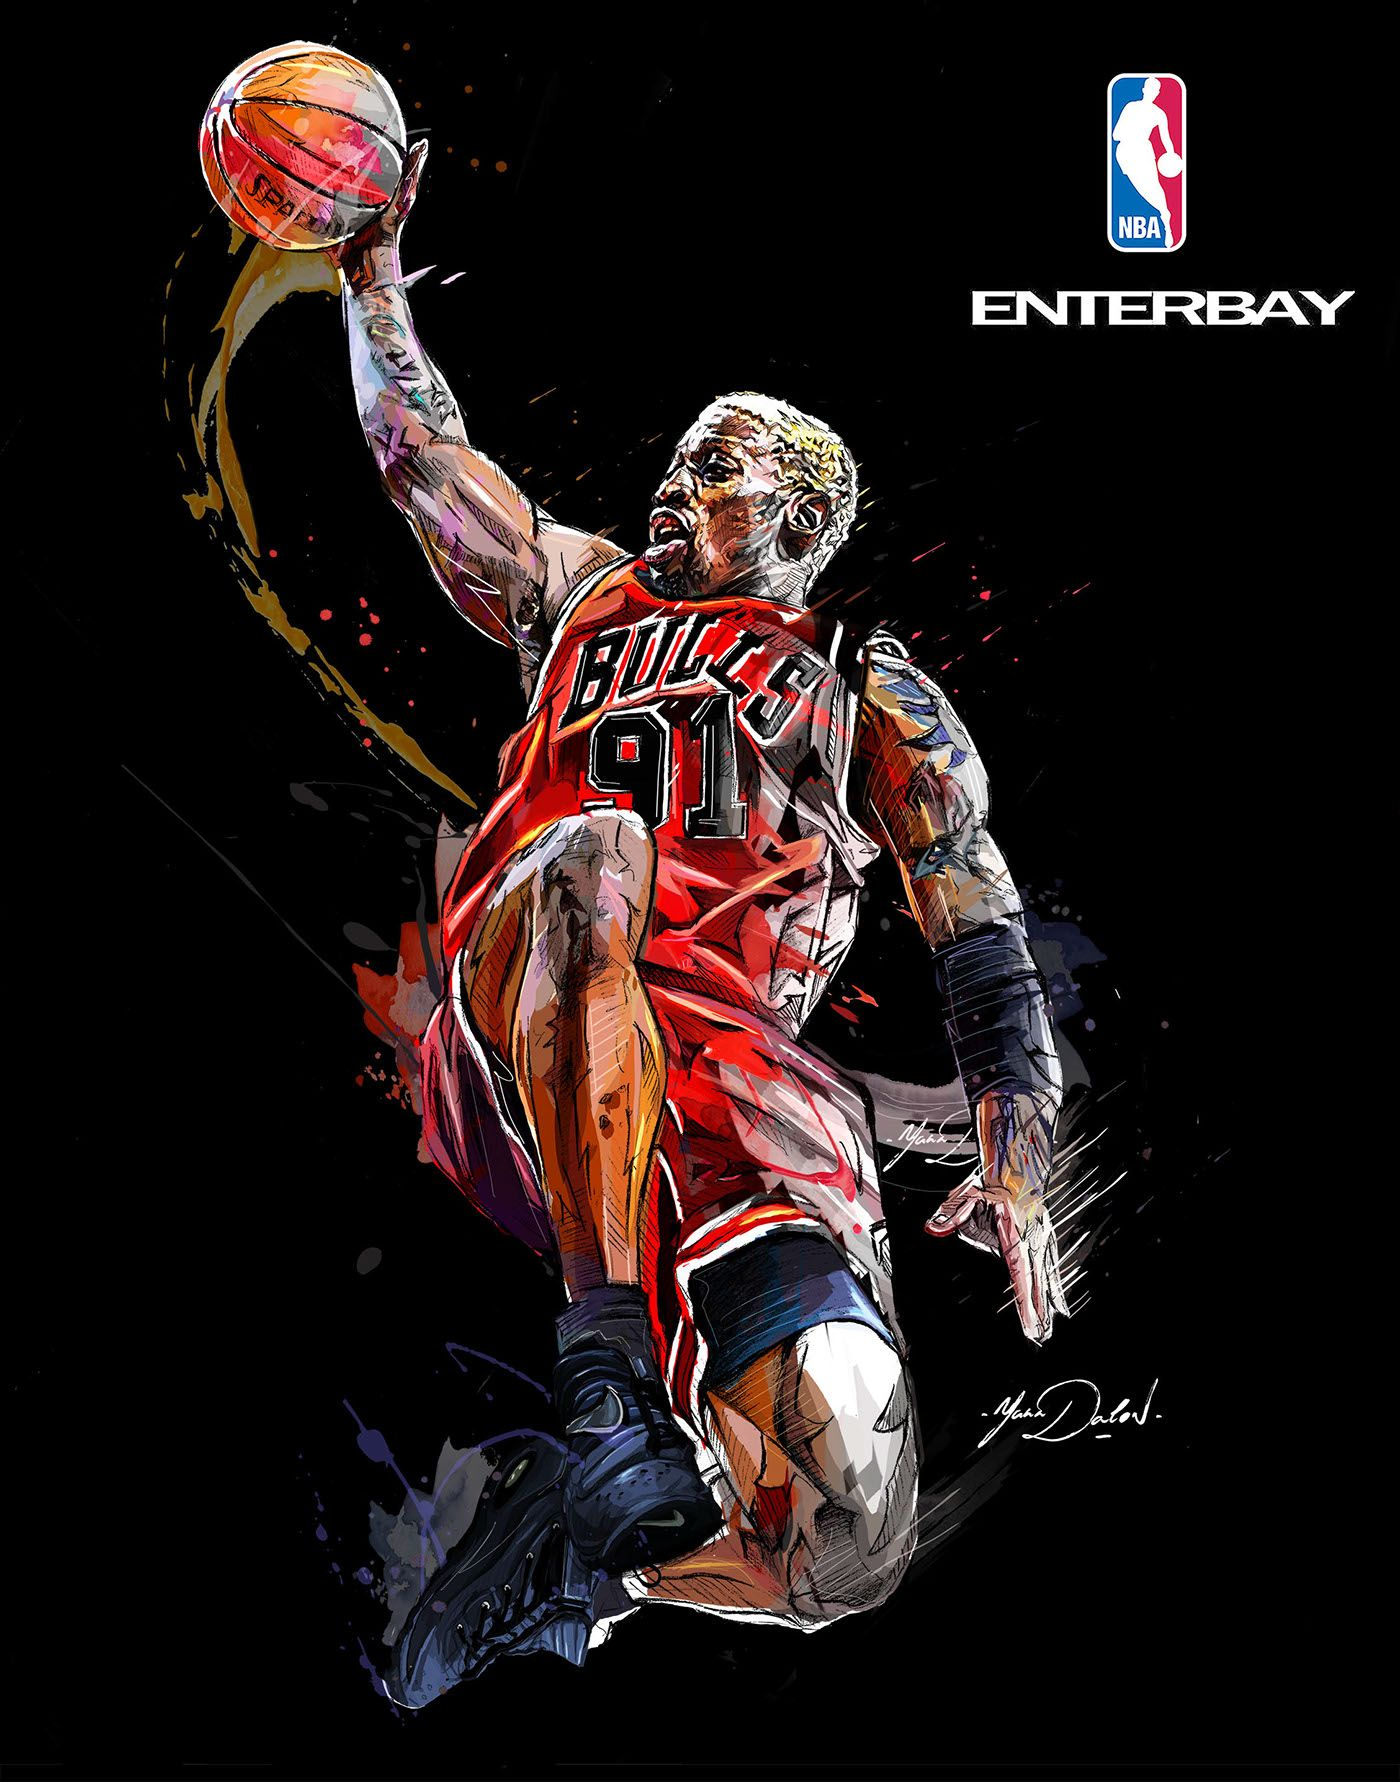 99e50bd7ea44 My collaboration with the brand ENTERBAY and the NBA . Three paintings of the  famous Michael Jordan